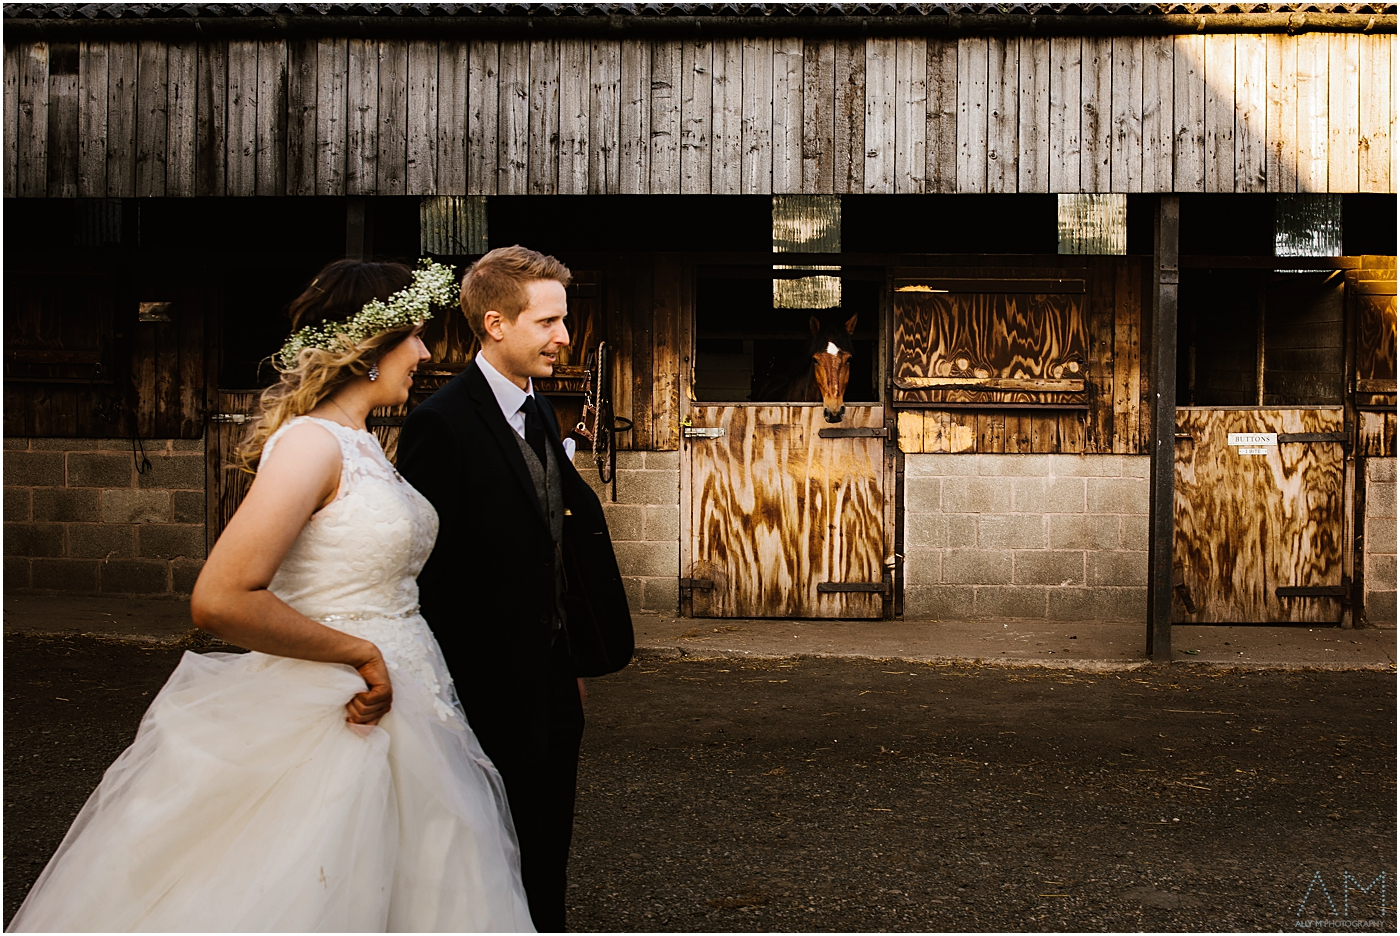 Bride and groom walking past a horse